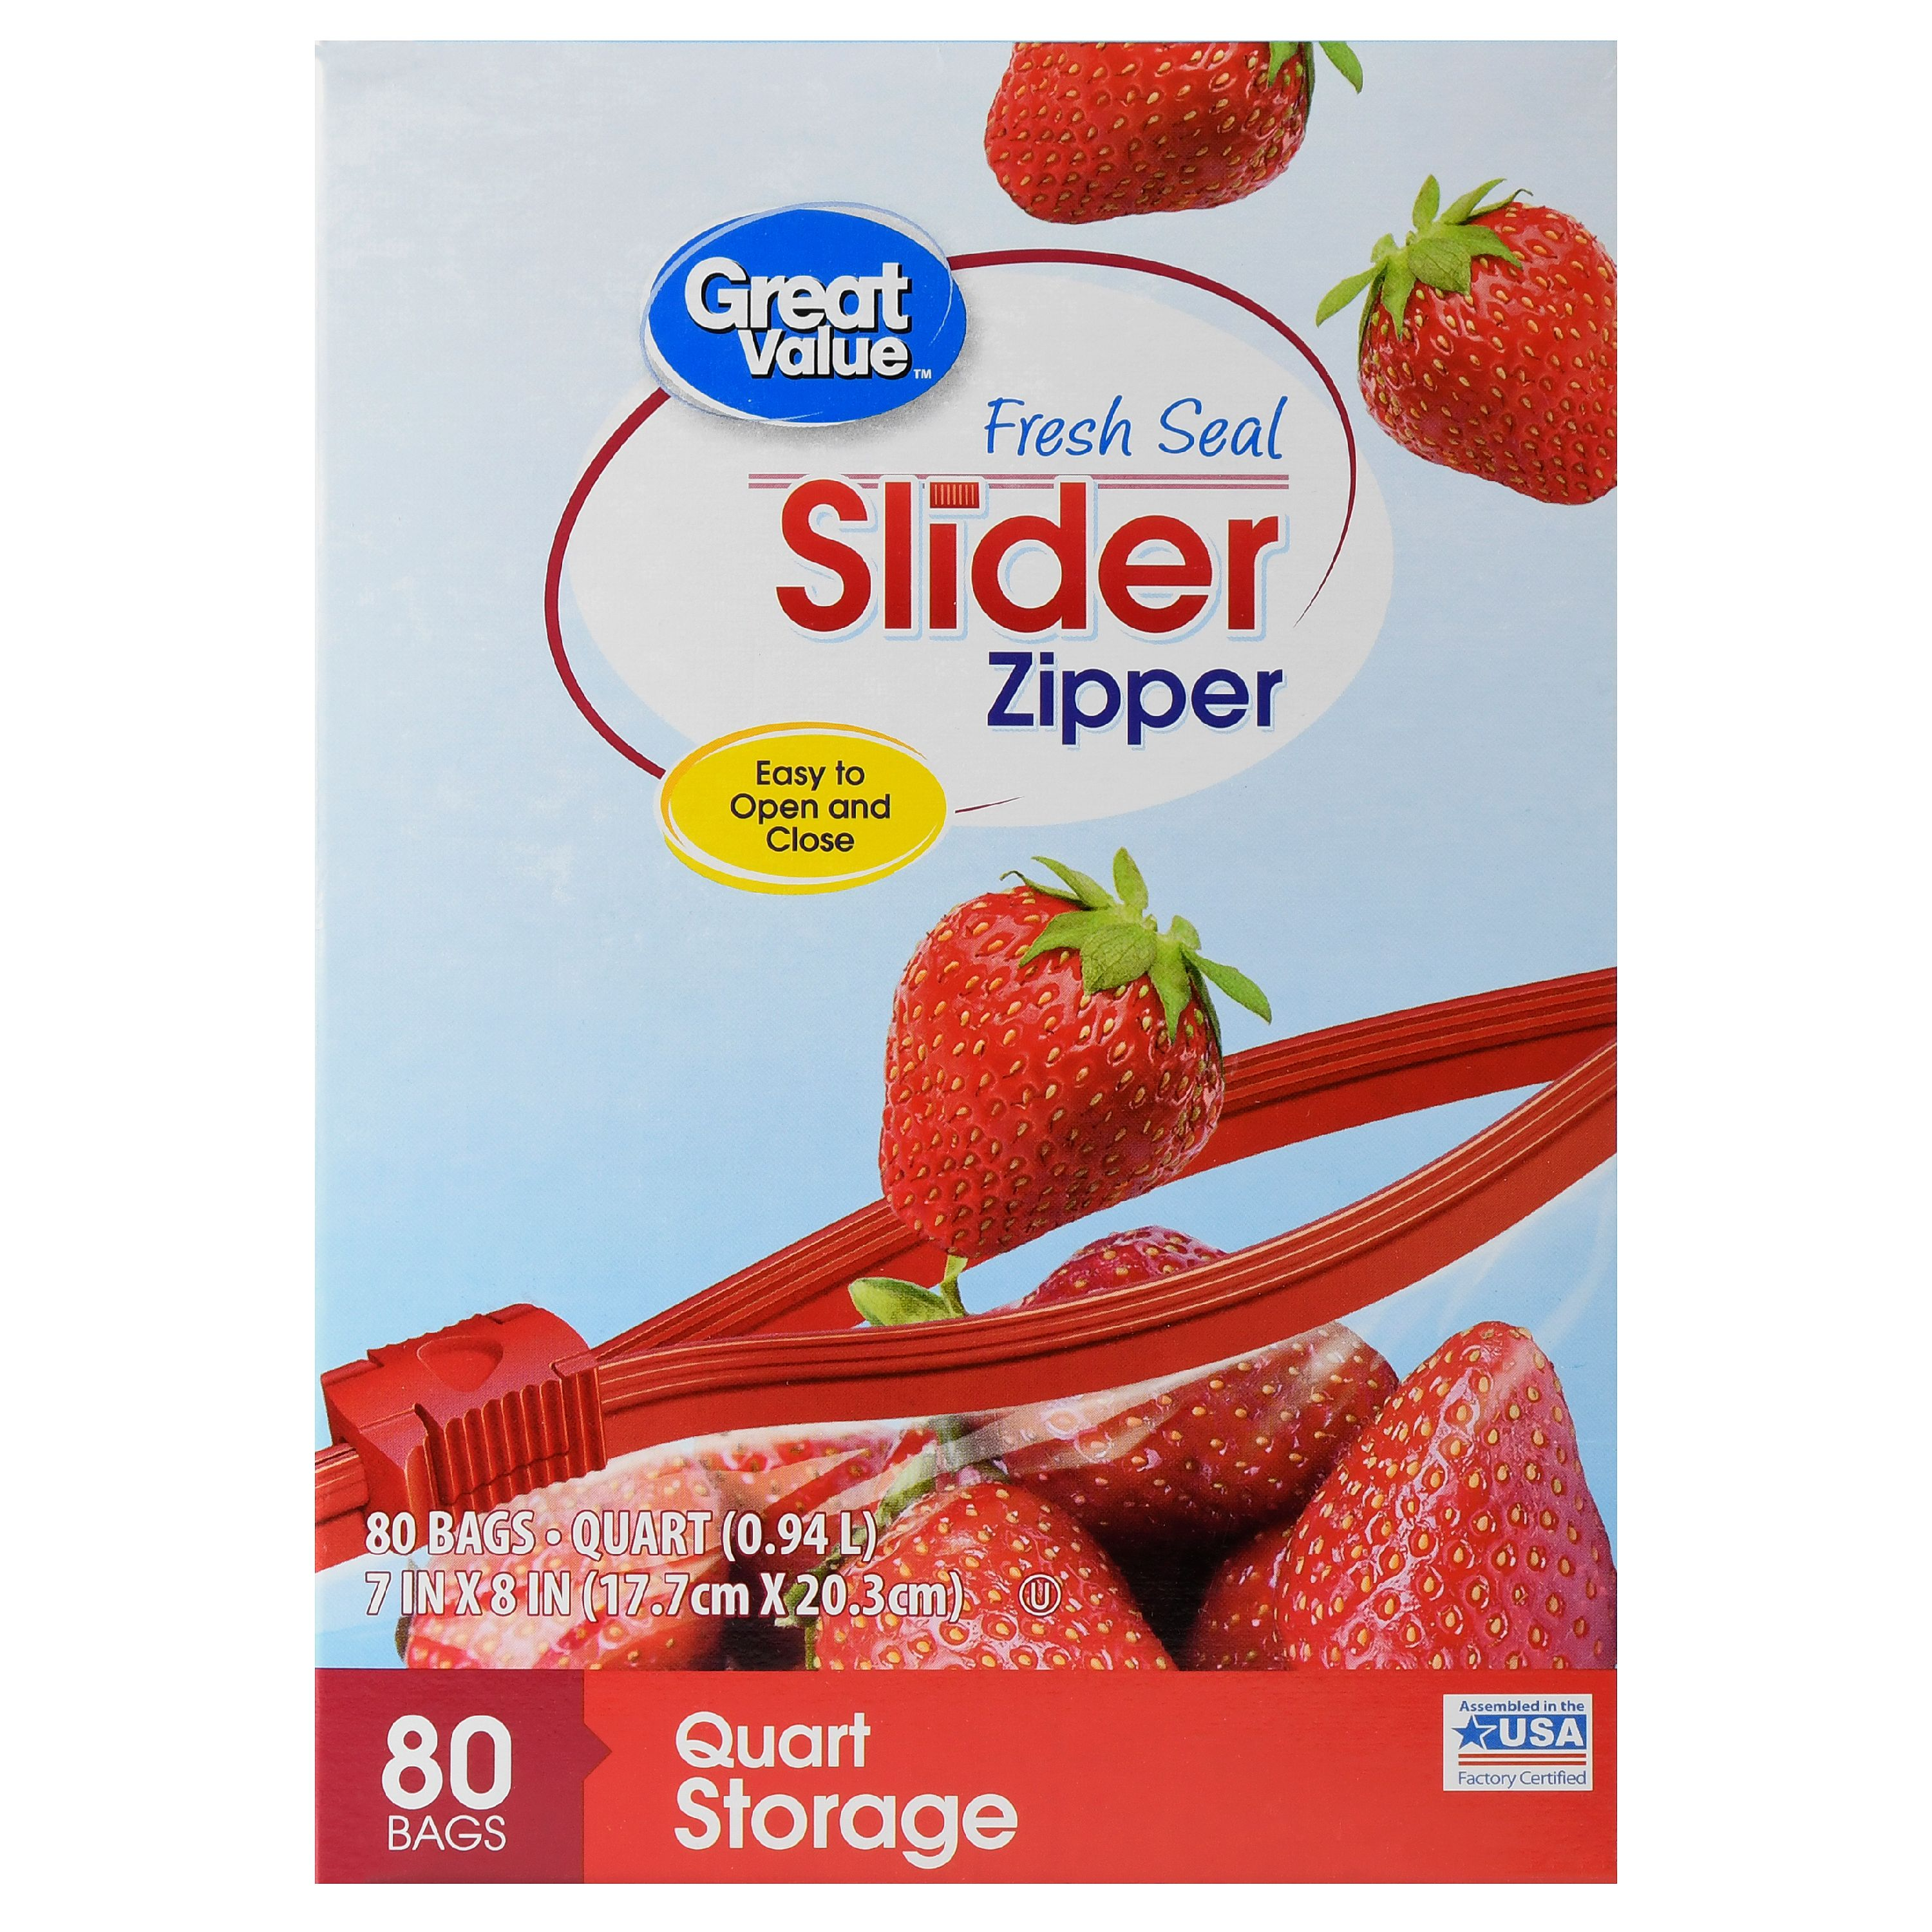 Great Value Slider Zipper Bags, Quart, 80 Count